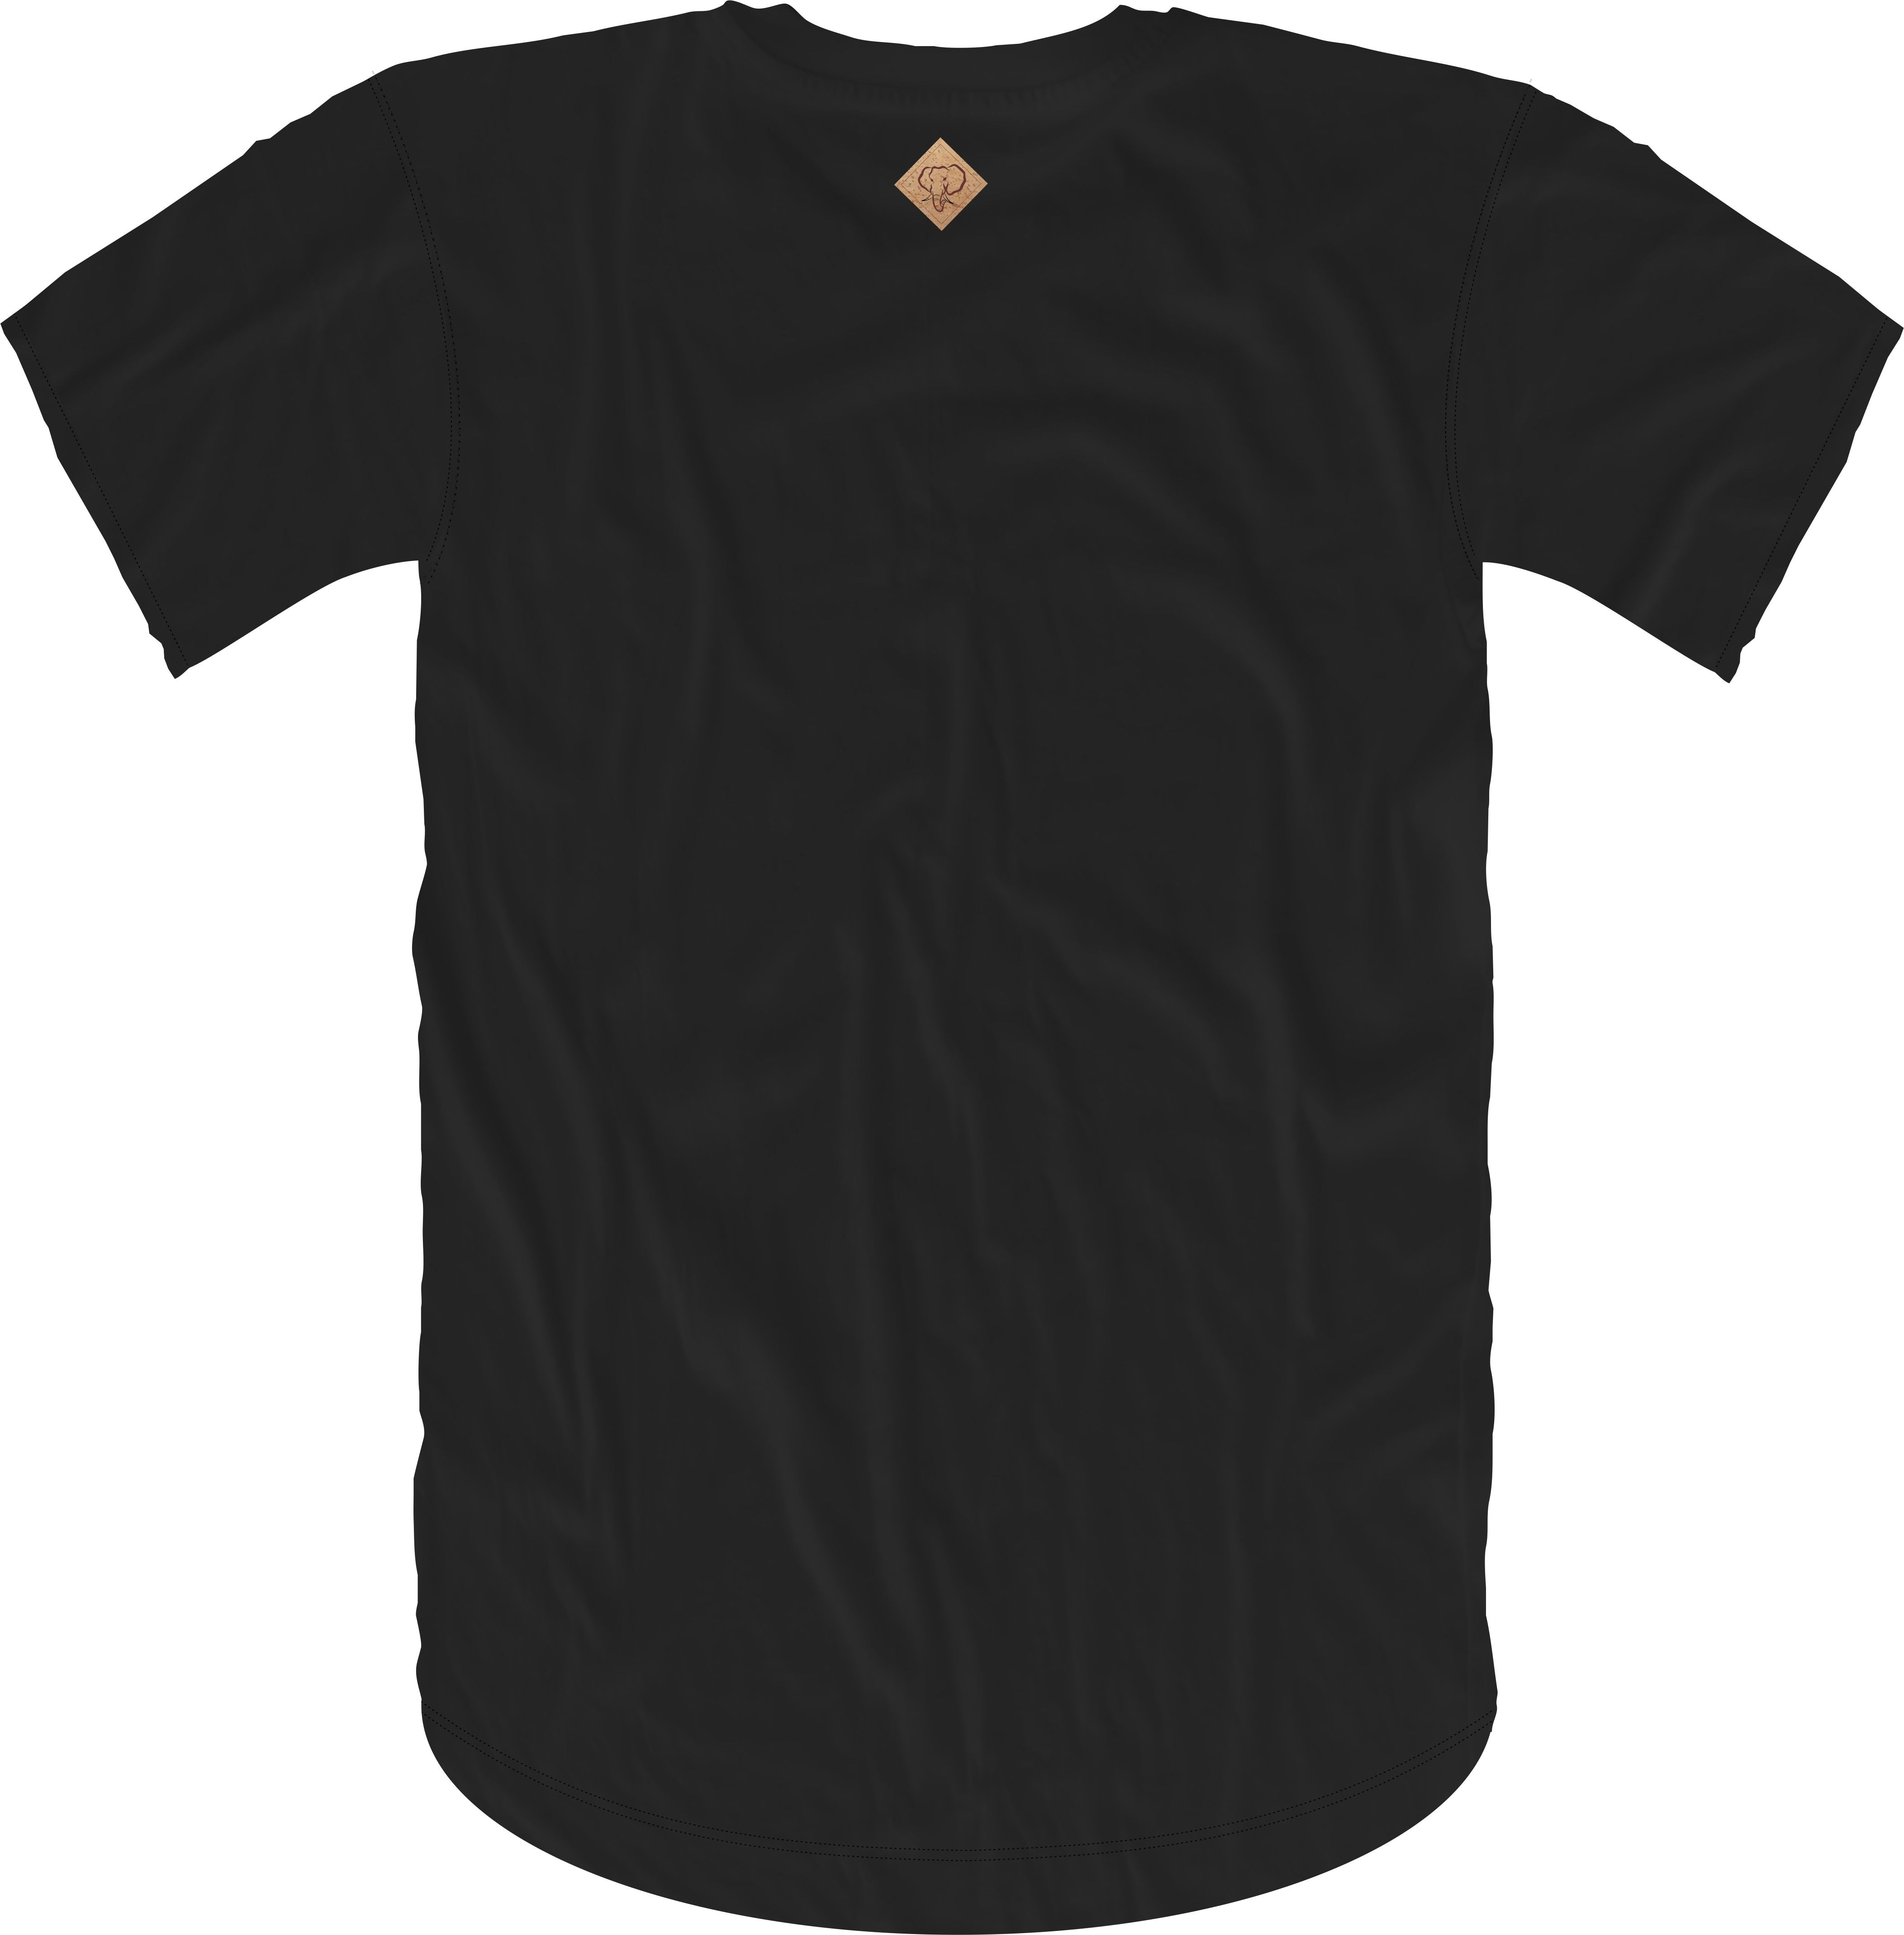 Handwritten Elephant Trunk Insert Short Sleeve Tee- Black